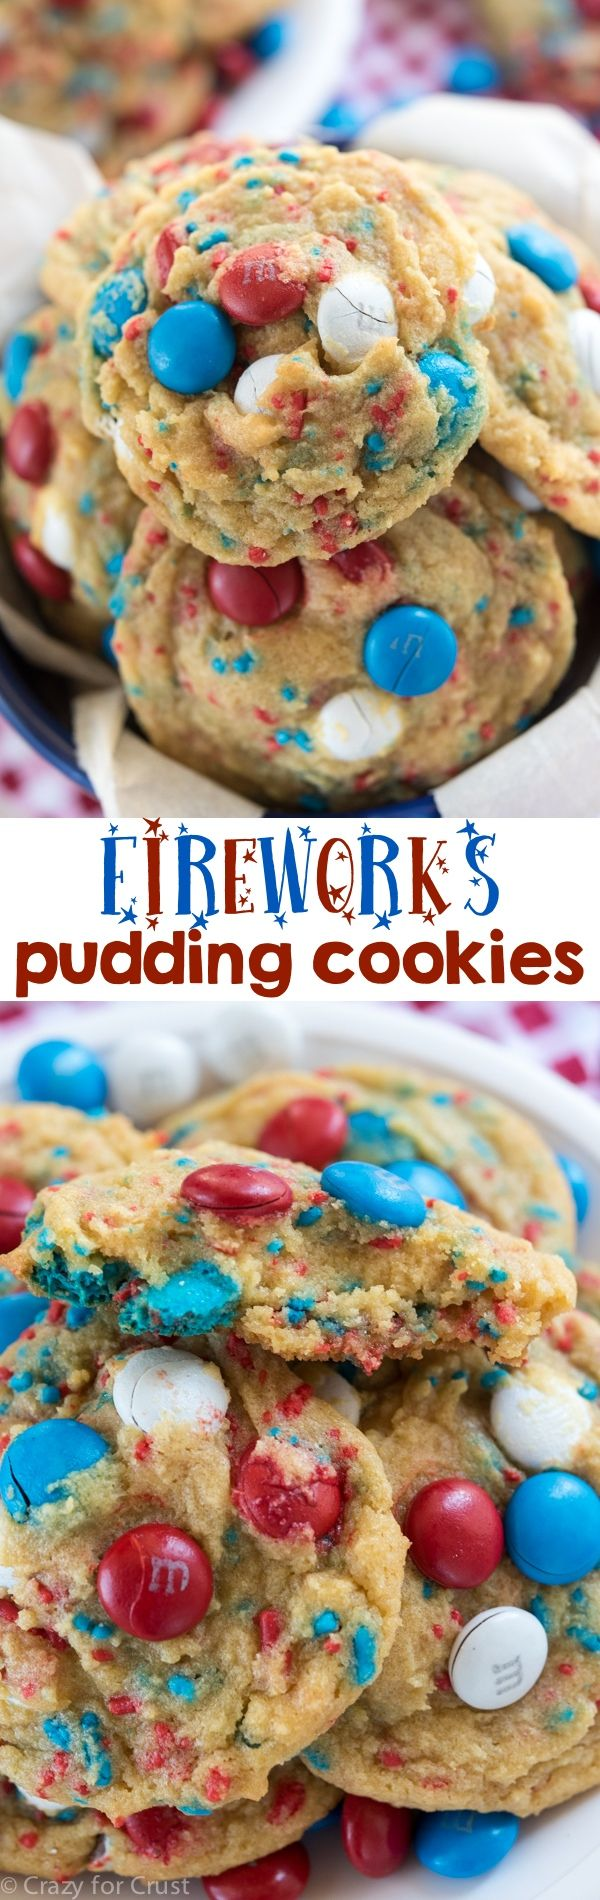 Fireworks Pudding Cookies - a brown sugar pudding cookie full of red, white, and blue! This is the perfect easy cookie recipe for any party.